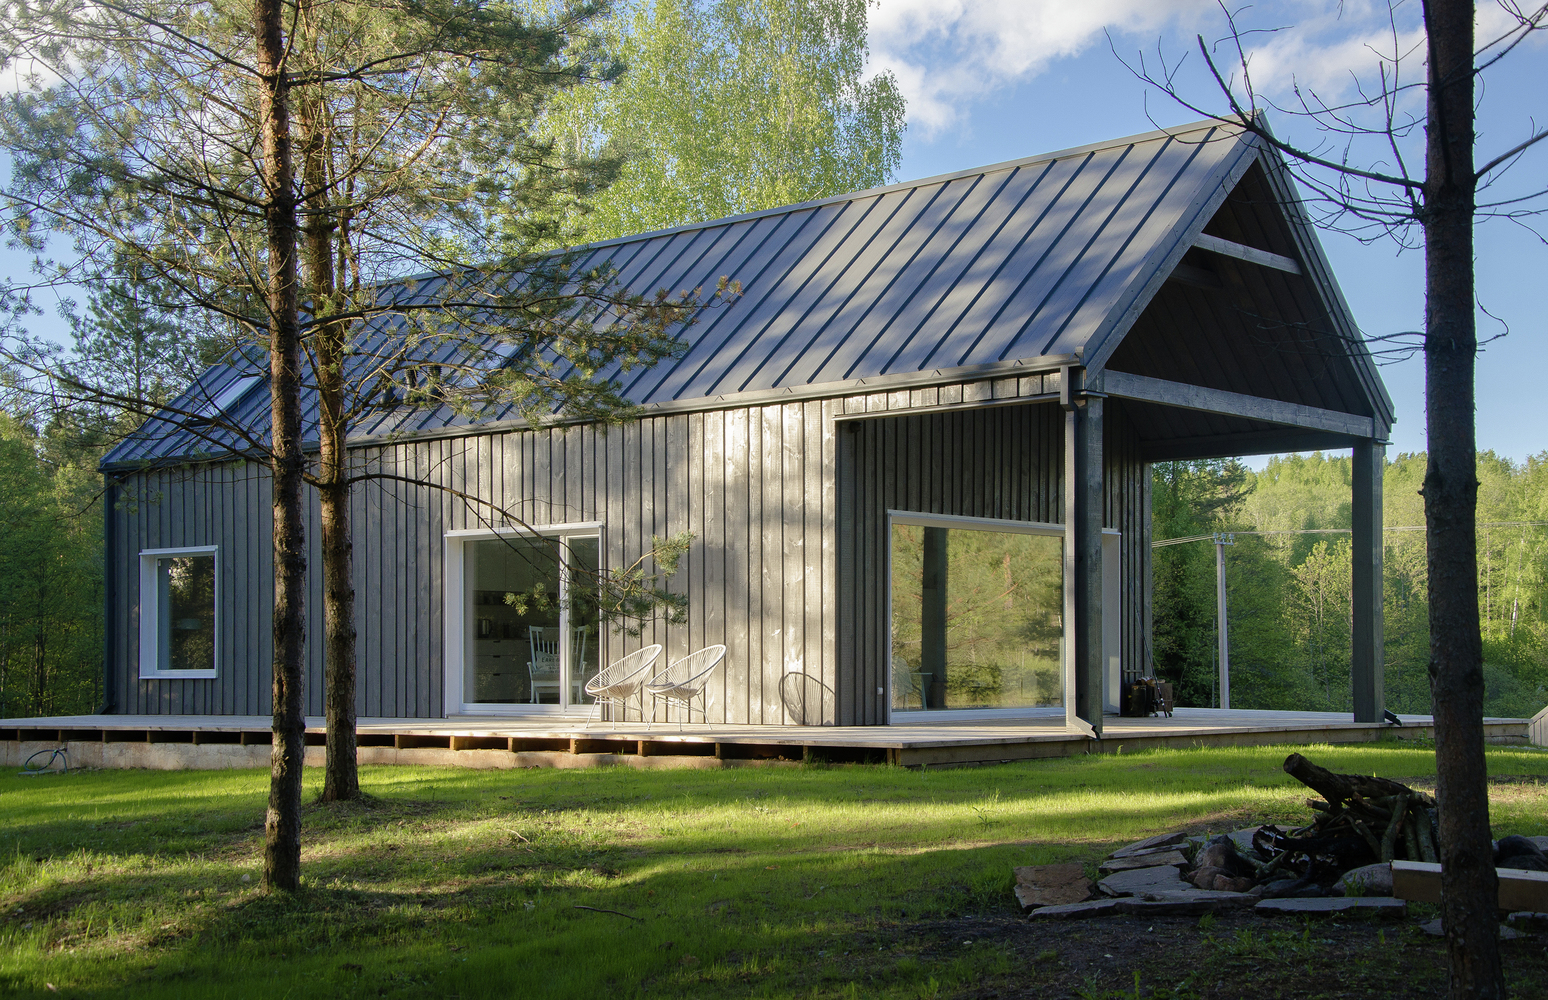 hunting house surrounded by woods in lithuania 9 Hunting House Surrounded By Woods In Lithuania